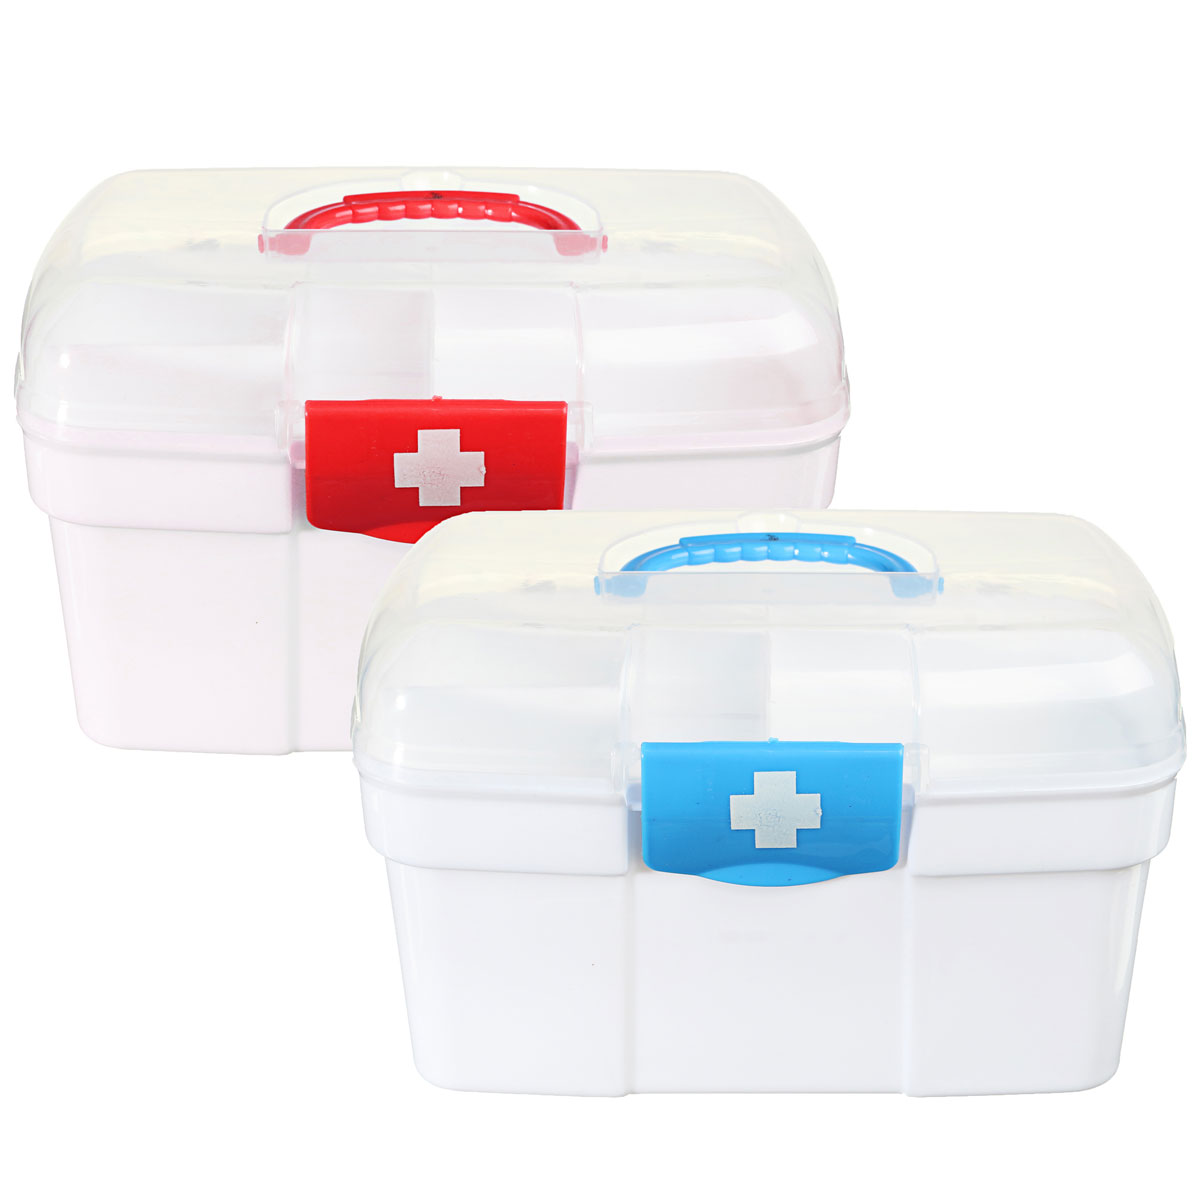 Safurance Plastic 2 Layers Home Medicine Chest First Aid Kit Holder Storage Box Emergency Kits Security SafetySafurance Plastic 2 Layers Home Medicine Chest First Aid Kit Holder Storage Box Emergency Kits Security Safety